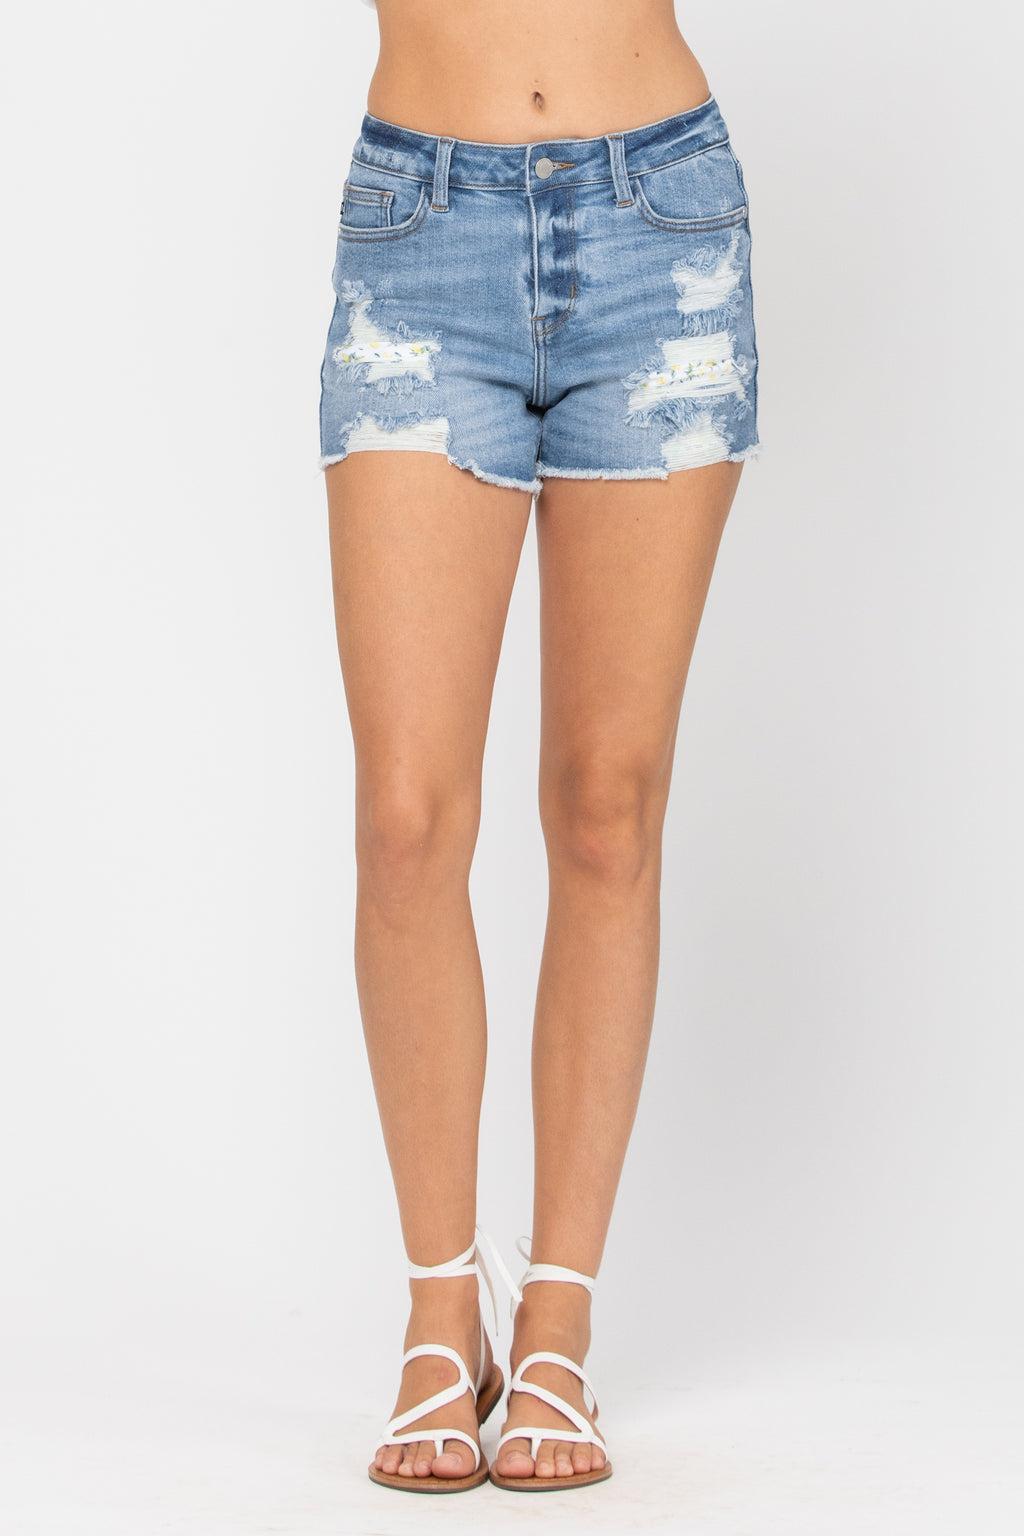 Lulu Lemon Patch Shorts